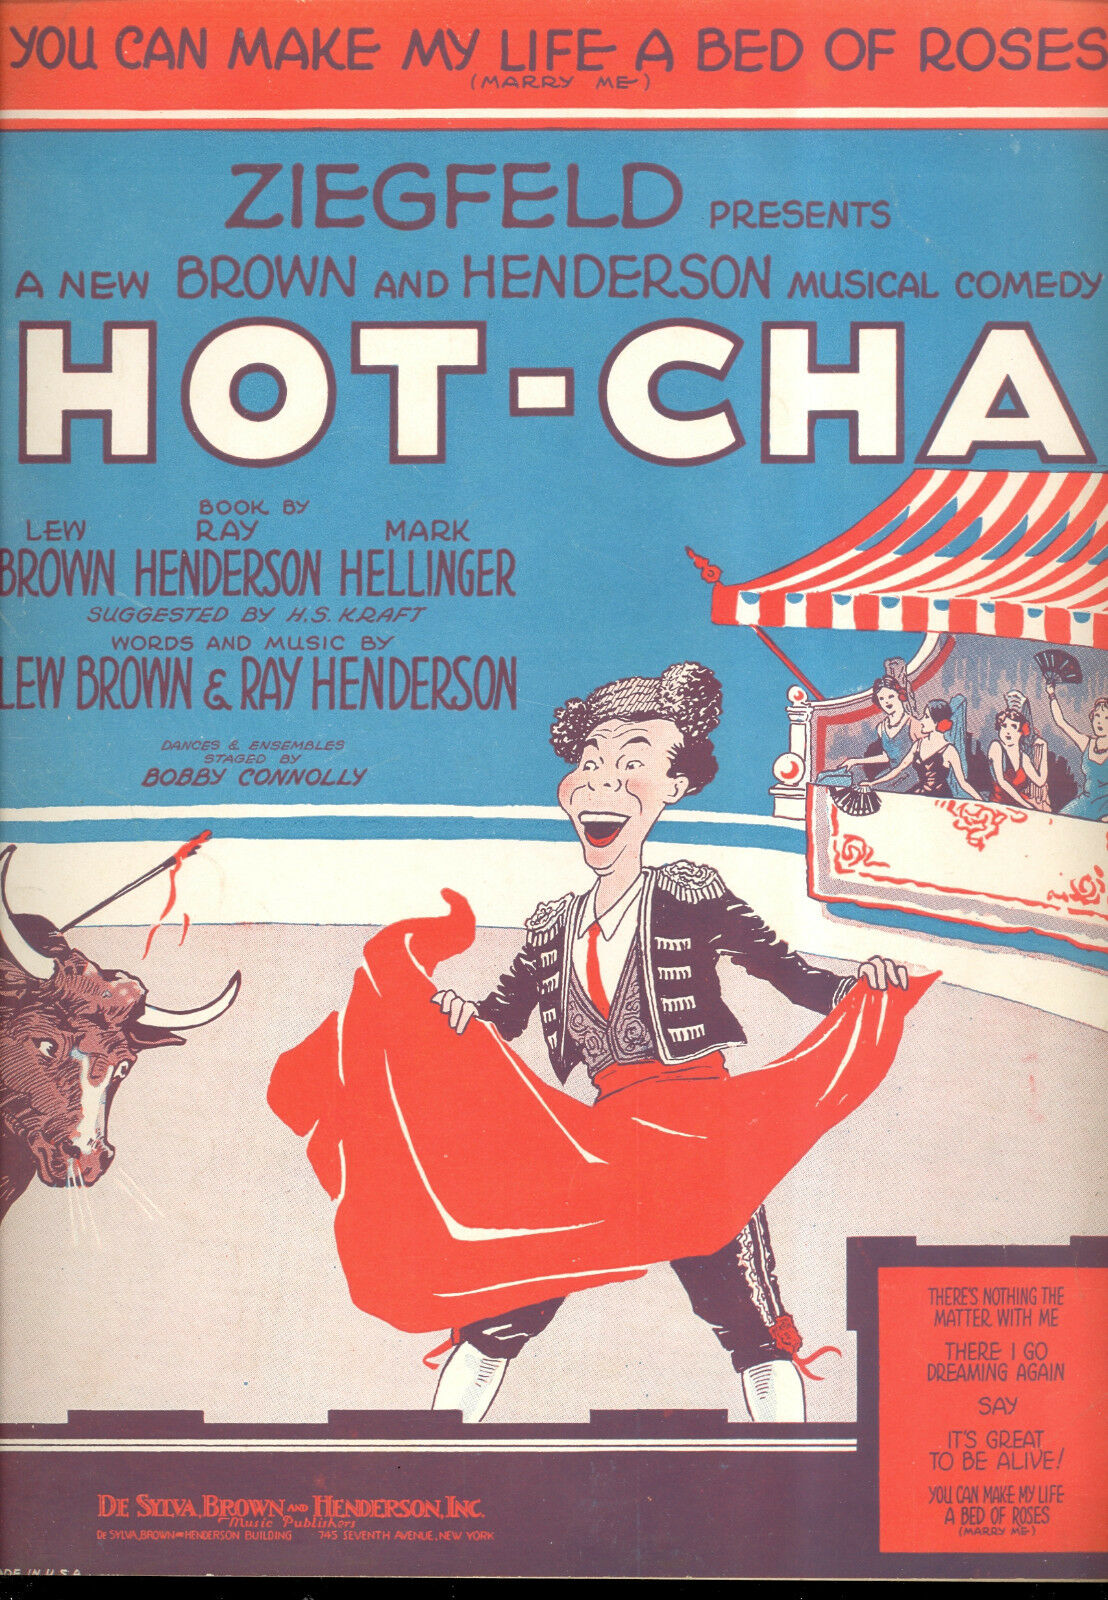 Hot-Cha Broadway show partitura  you can can can make my life a bed of rosados   Envío 100% gratuito